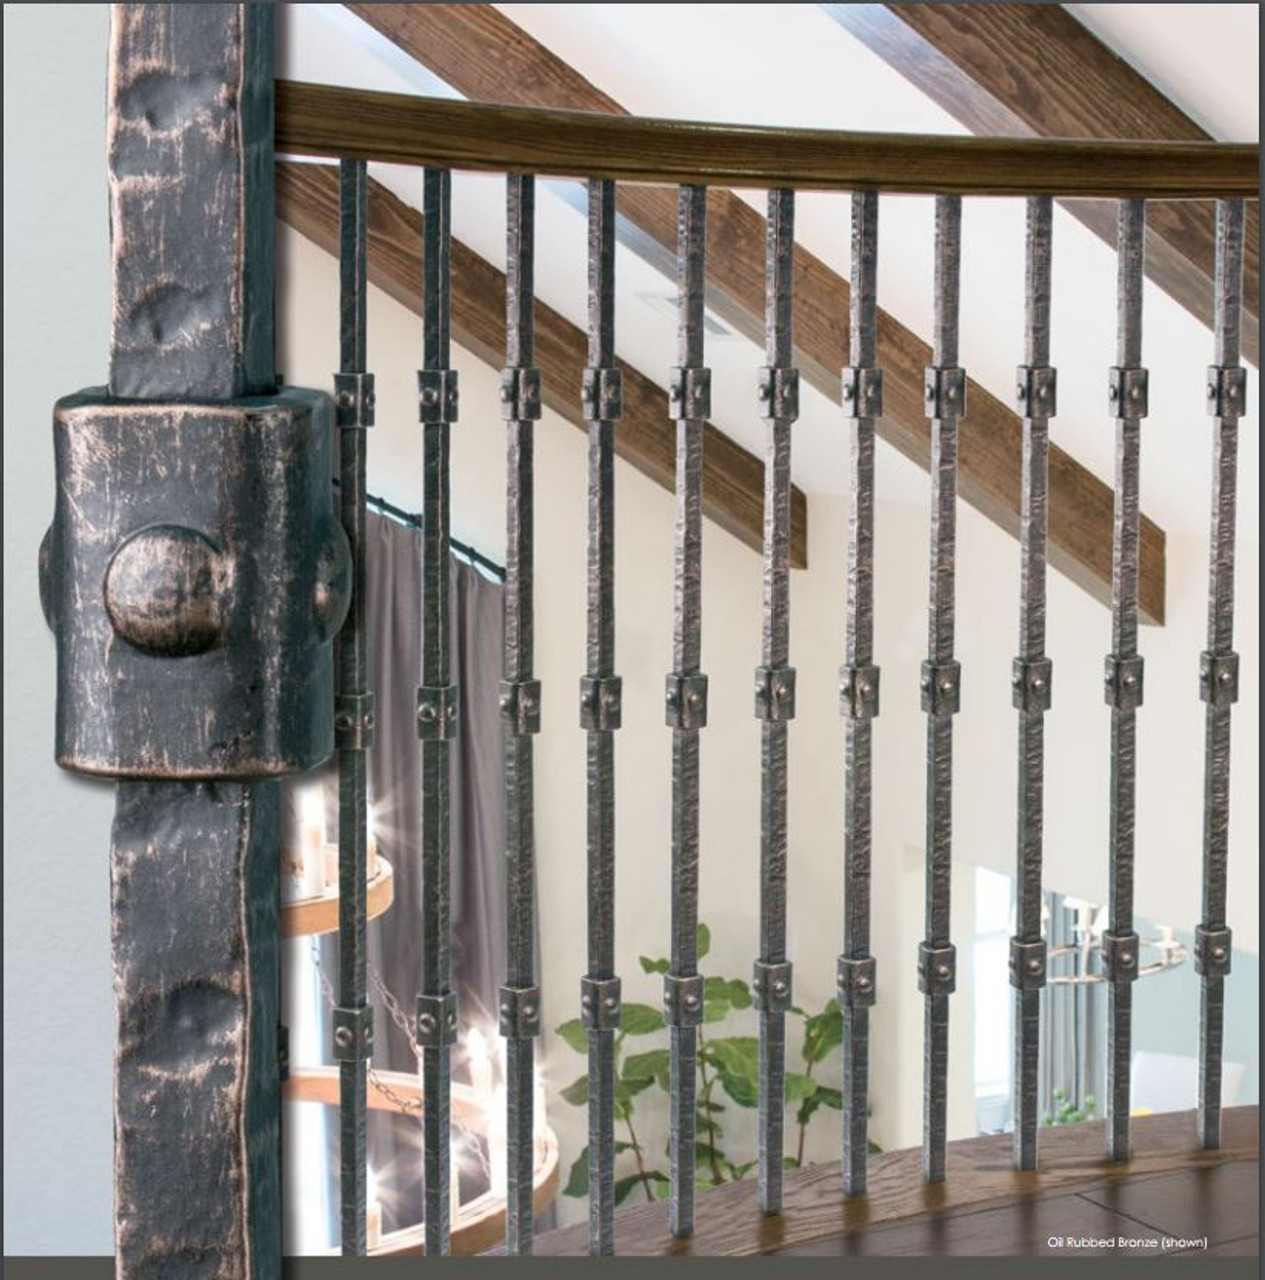 Wentworth Collection with the Square Triple Knuckle Balusters